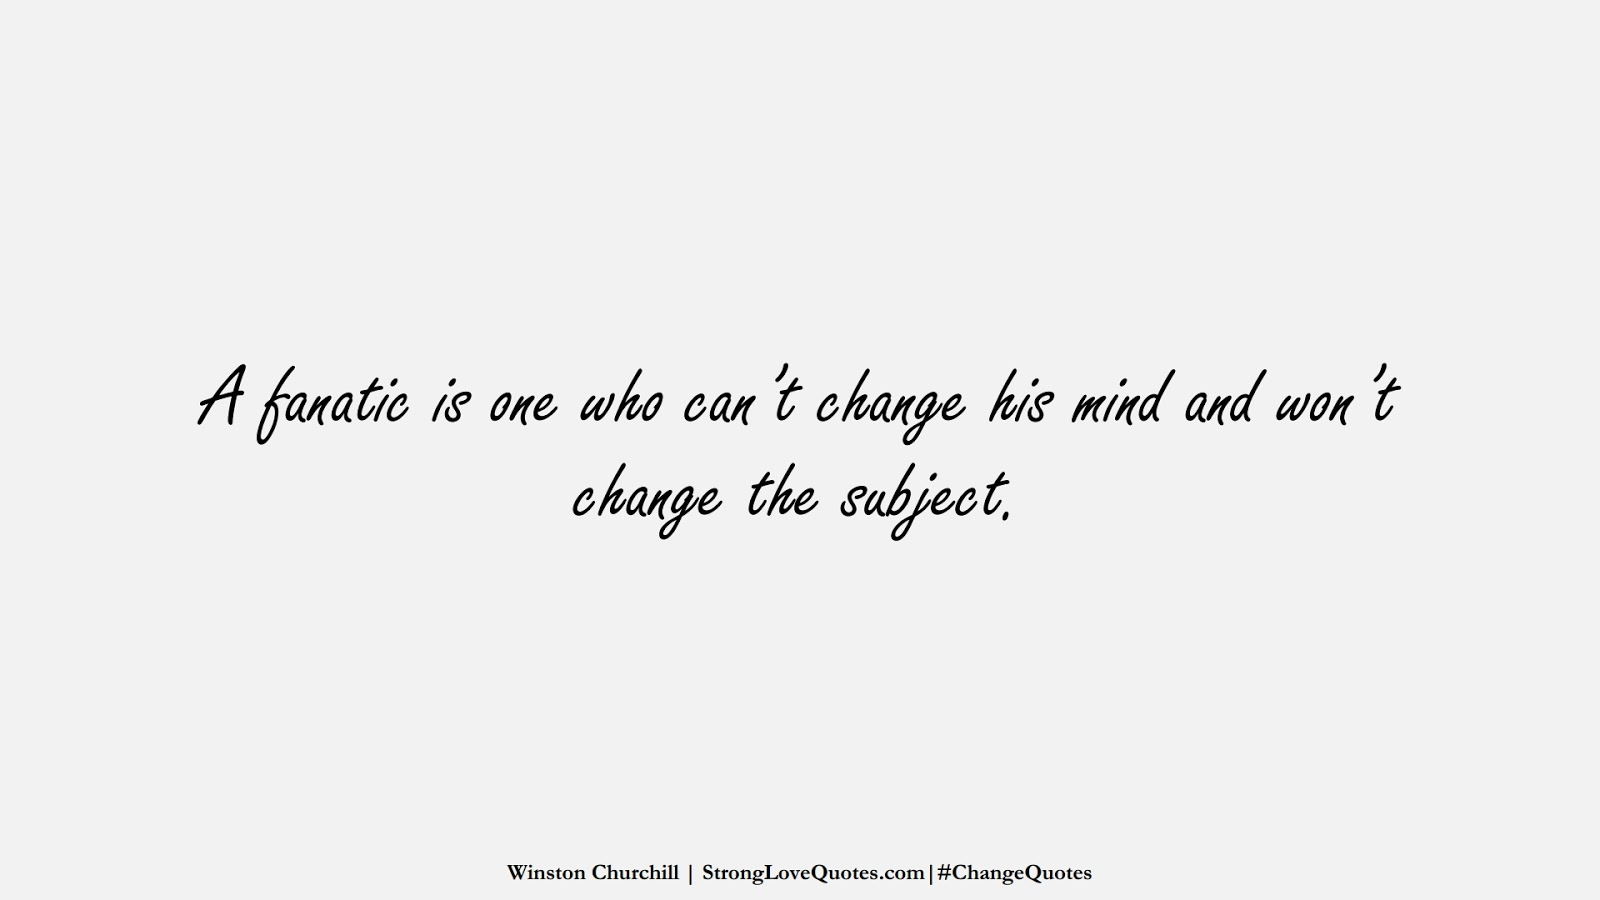 A fanatic is one who can't change his mind and won't change the subject. (Winston Churchill);  #ChangeQuotes